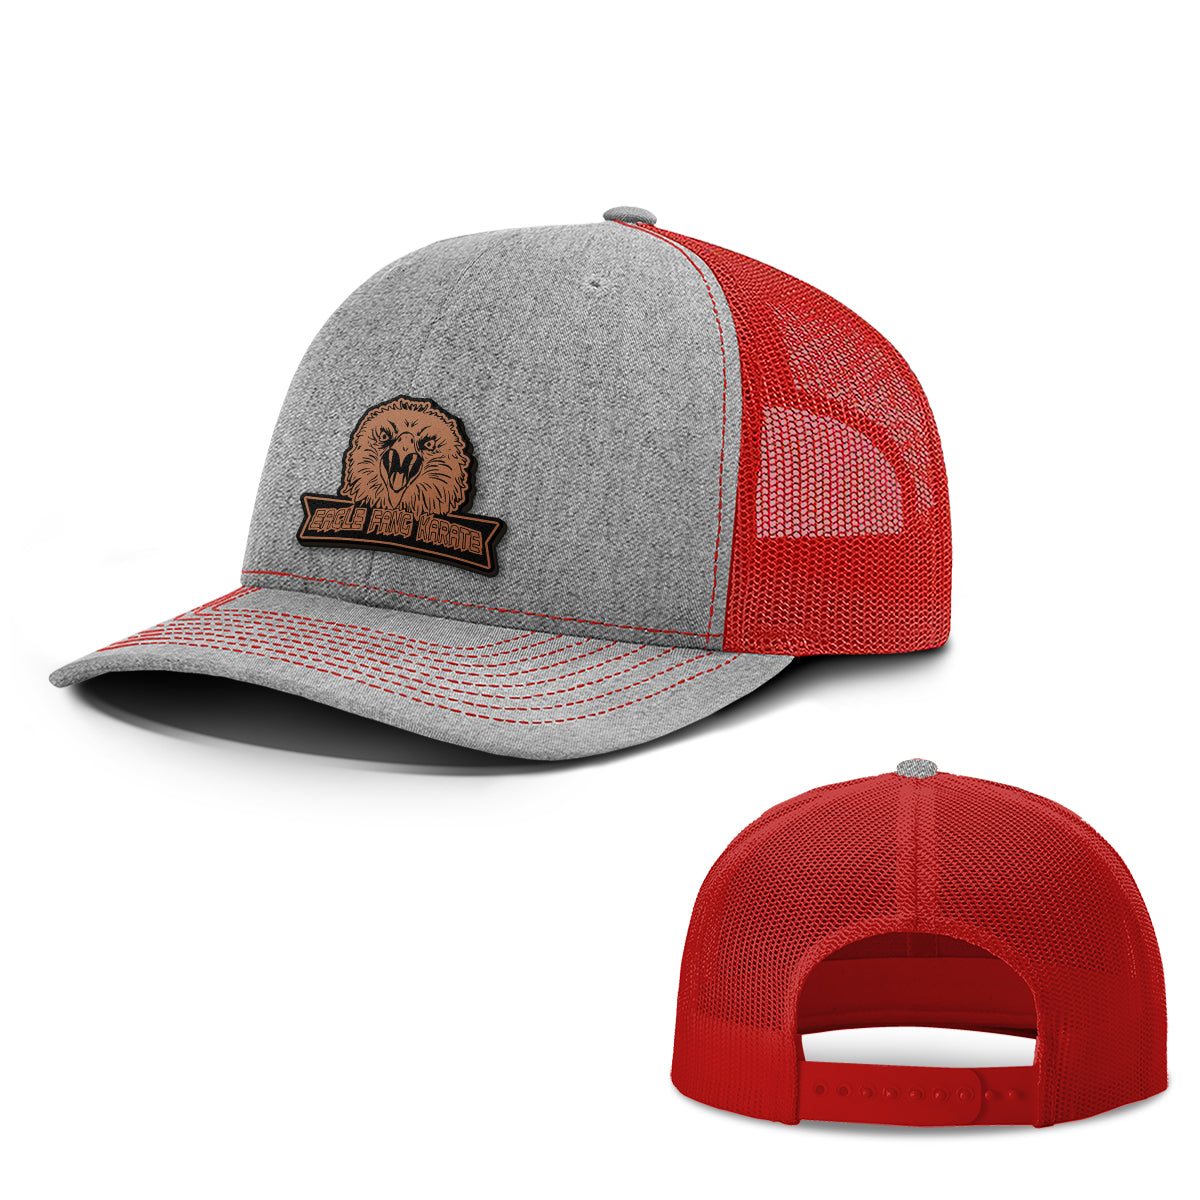 Eagle Fang Leather Patch Hats